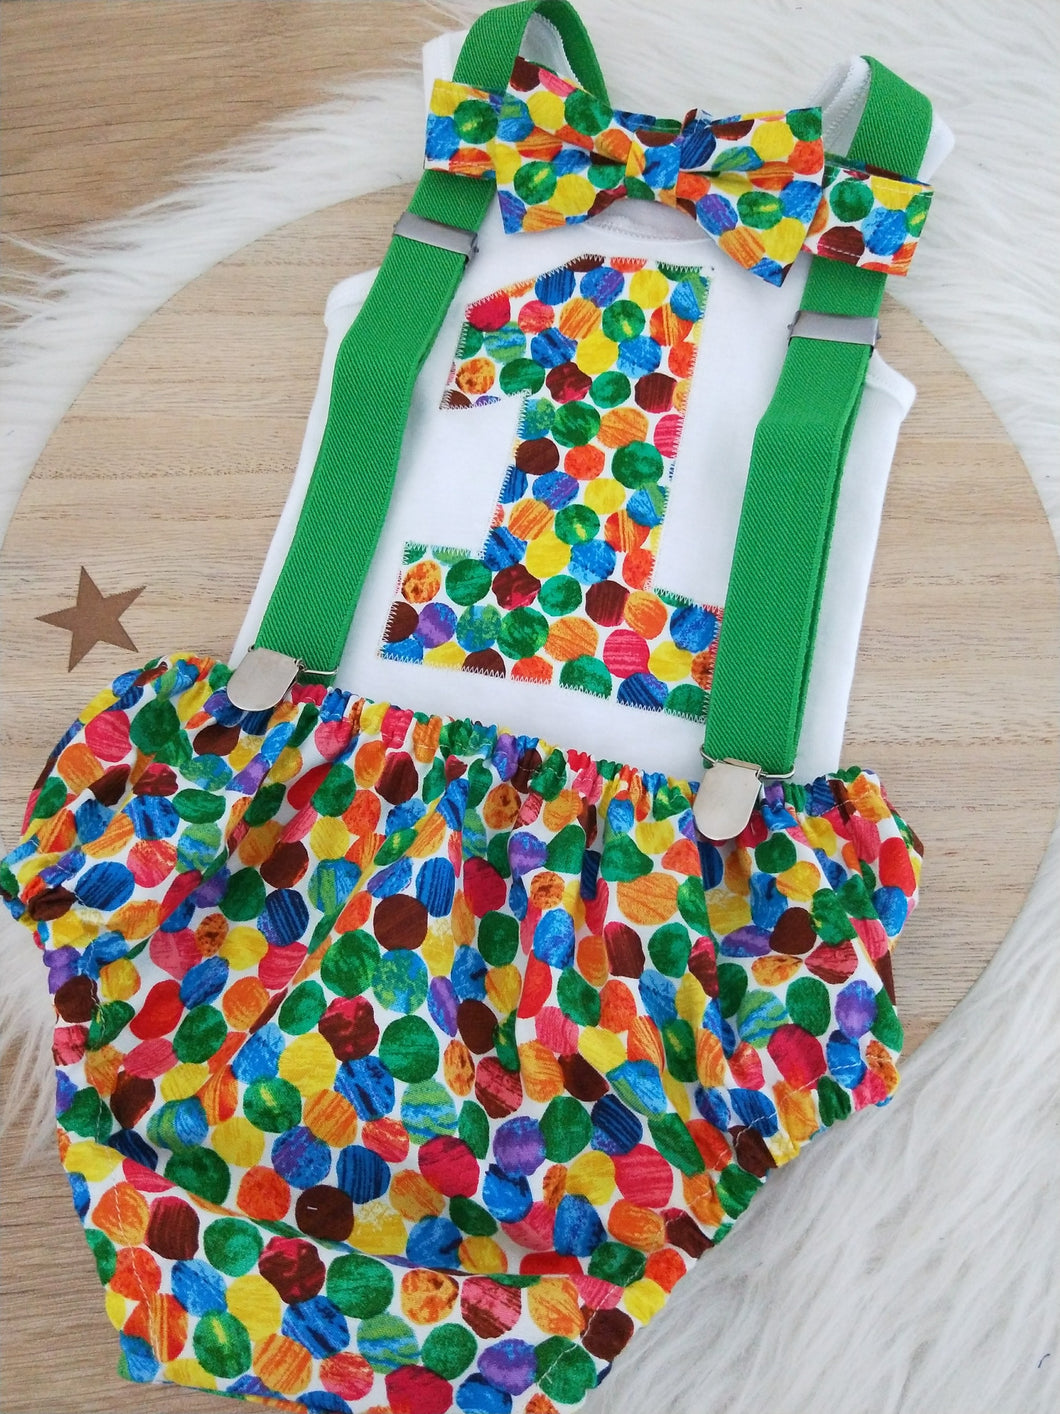 CATERPILLAR SPOTS - Boys 1st Birthday - Cake Smash Outfit - Size 0, Nappy Cover, Tie, Singlet & Suspenders Set